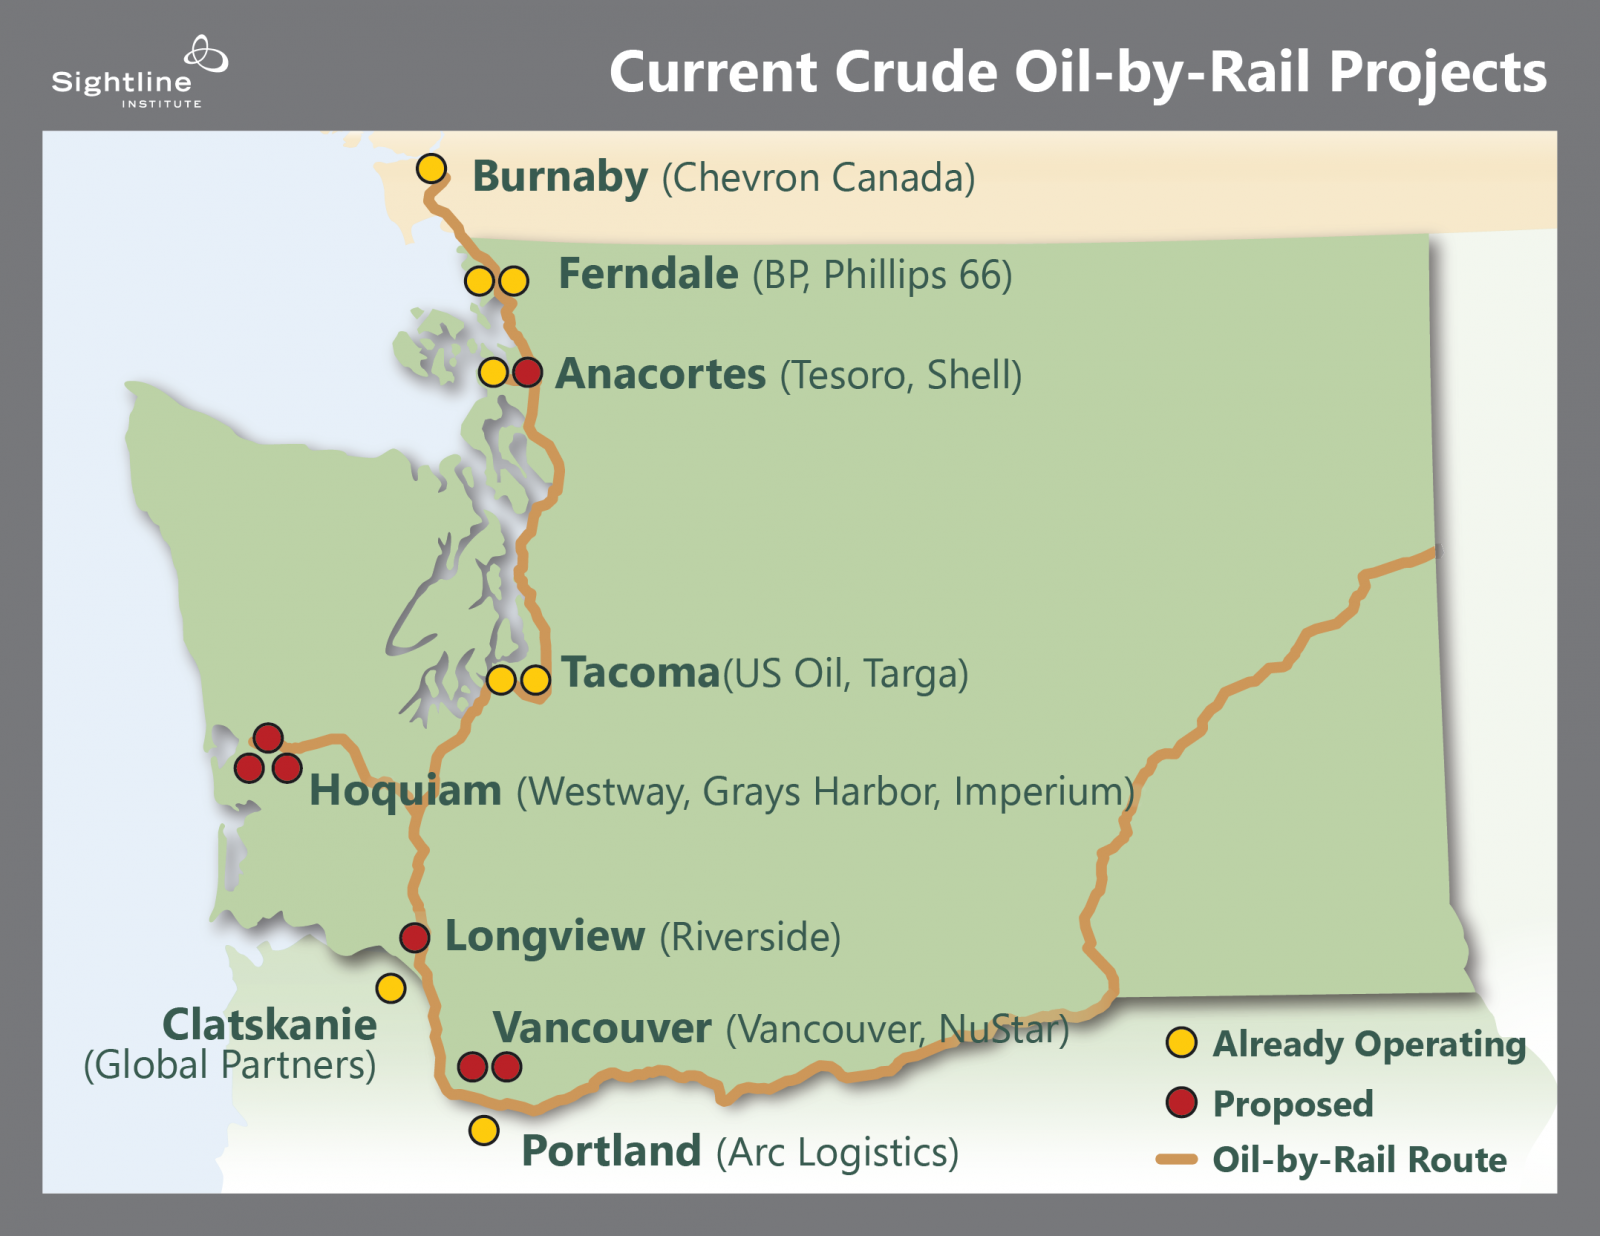 pnw-oil-by-rail-projects-map.-sightline-institute-july-2015.png